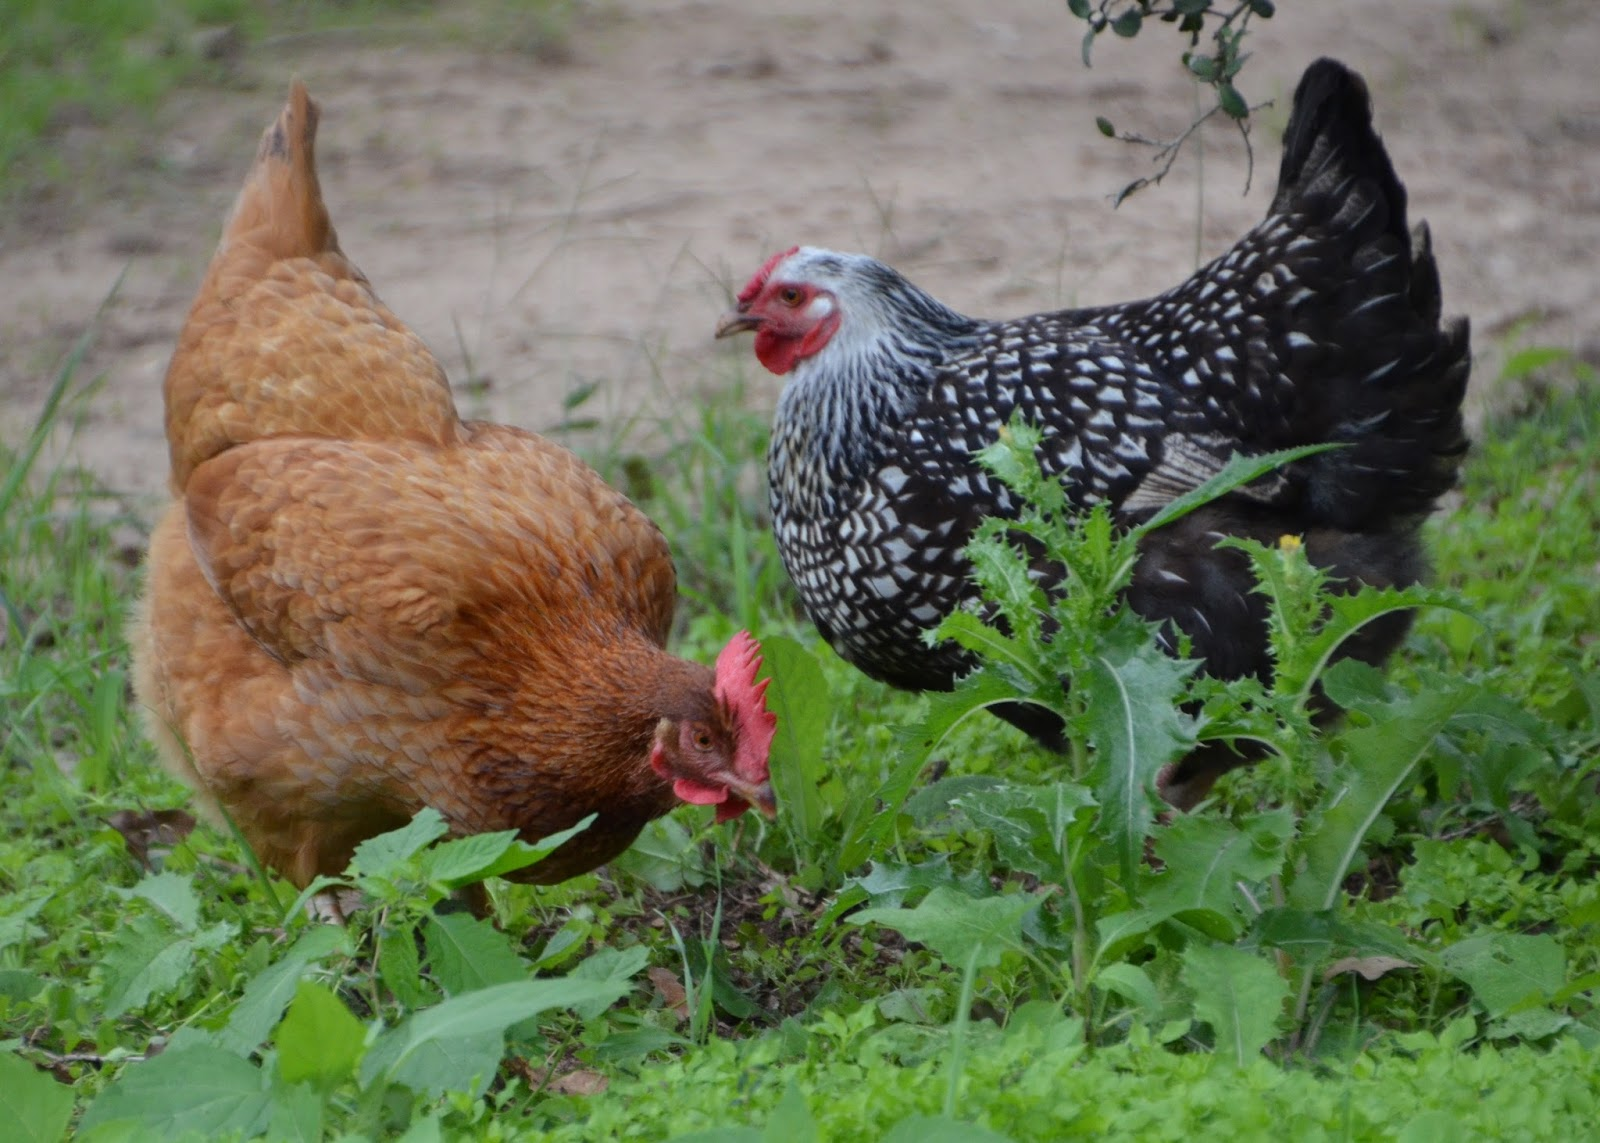 central texas horticulture chickens in your backyard